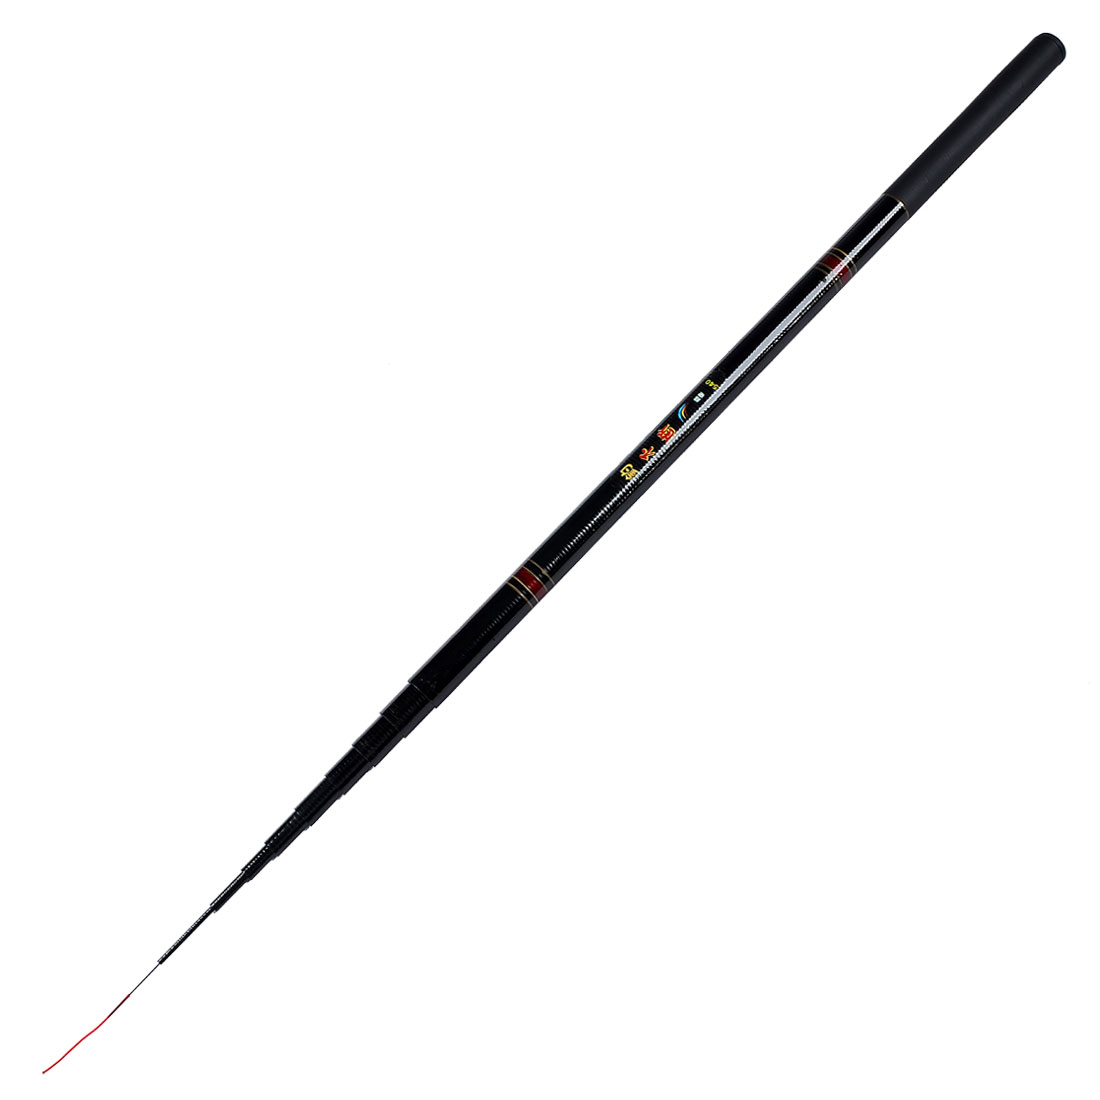 Portable 10 Sections Telescopic Fishing Rod Fish Pole Black 170""